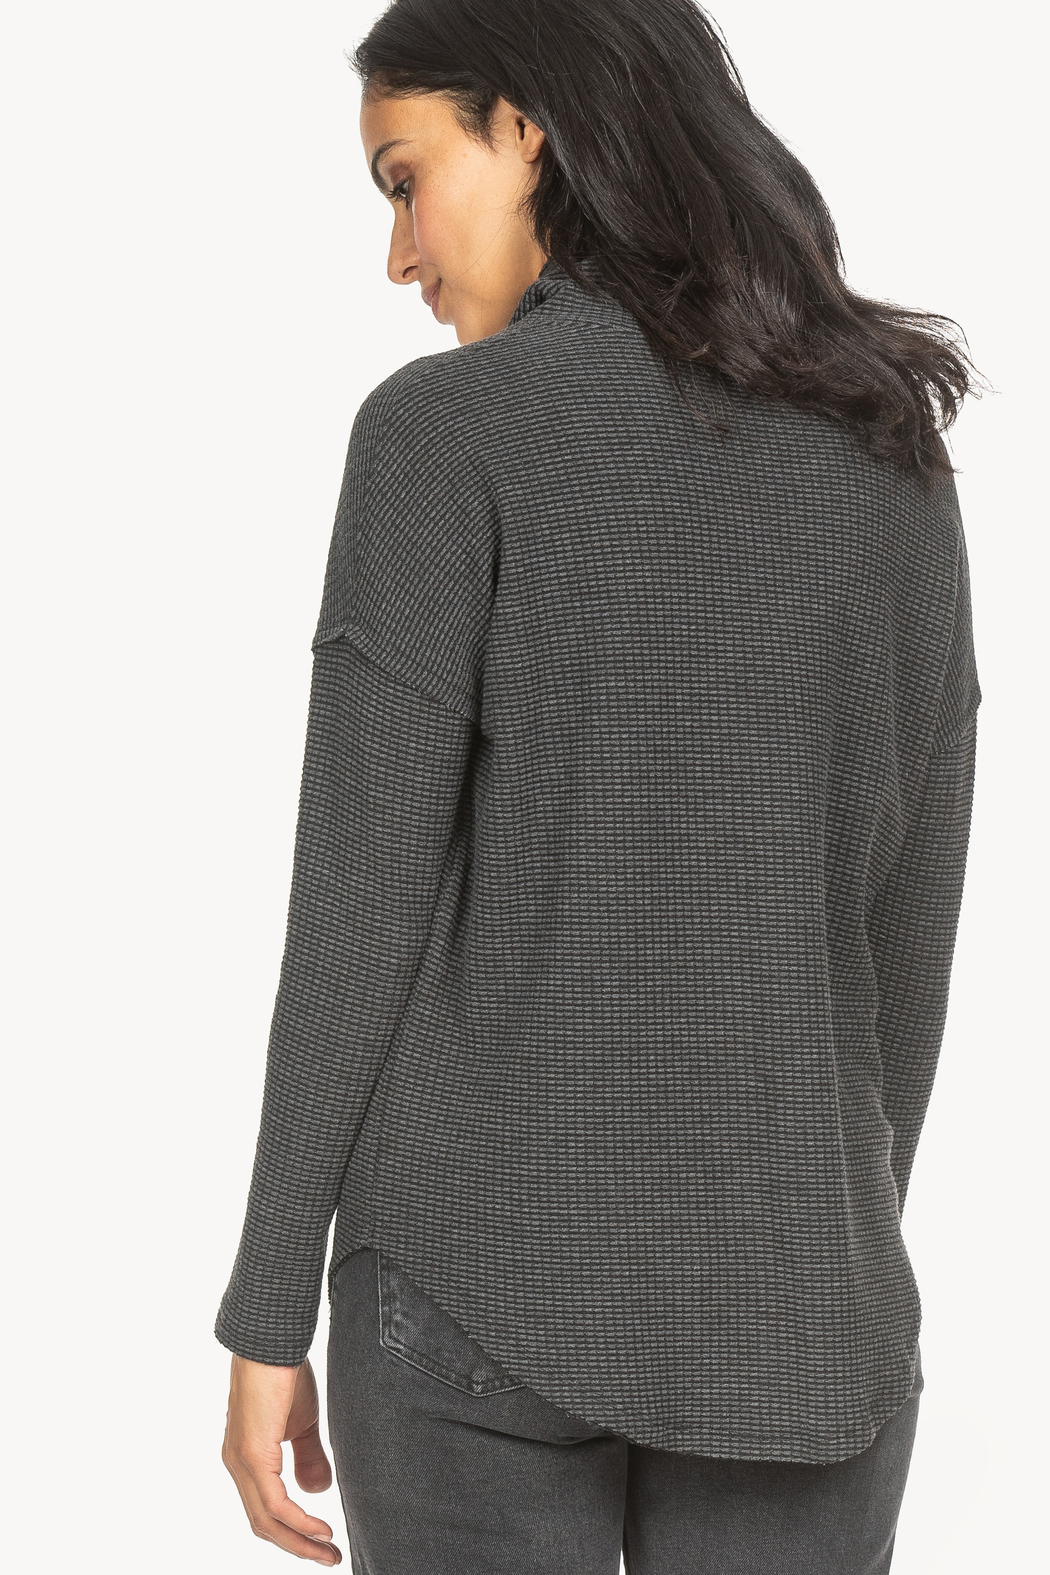 Lilla P Waffle Cowl Top - Front Full Image